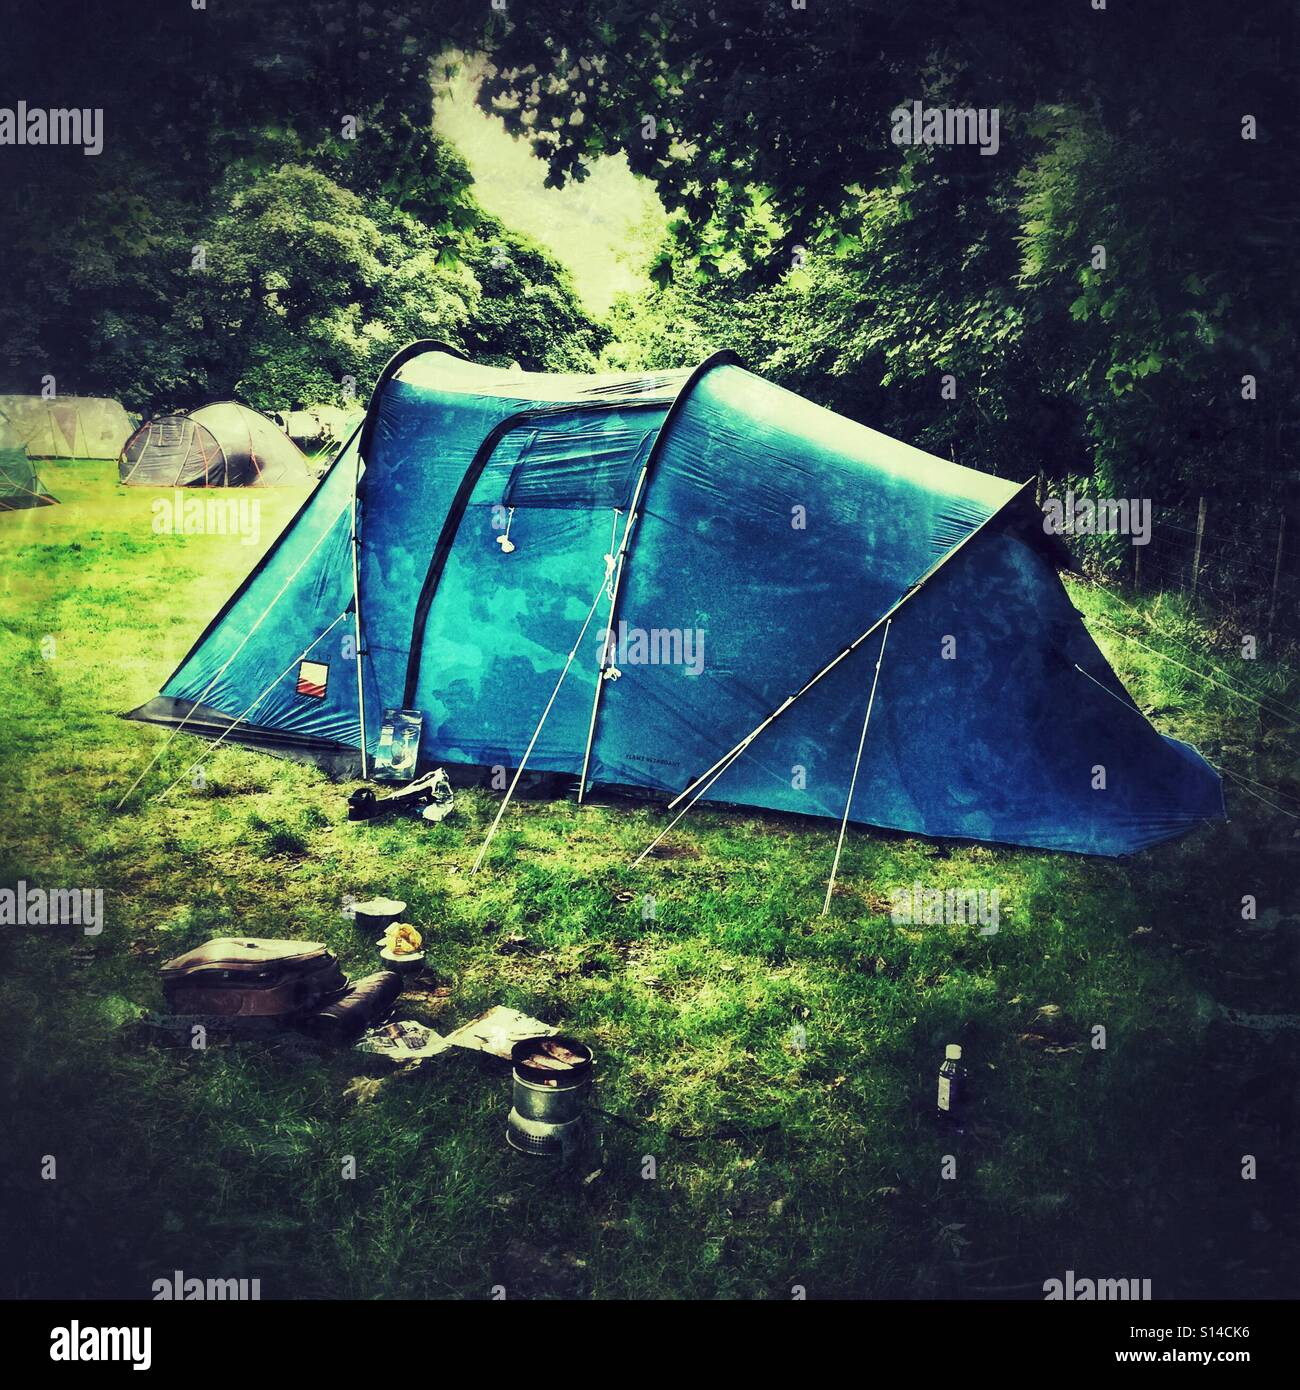 A tent in a field - Stock Image